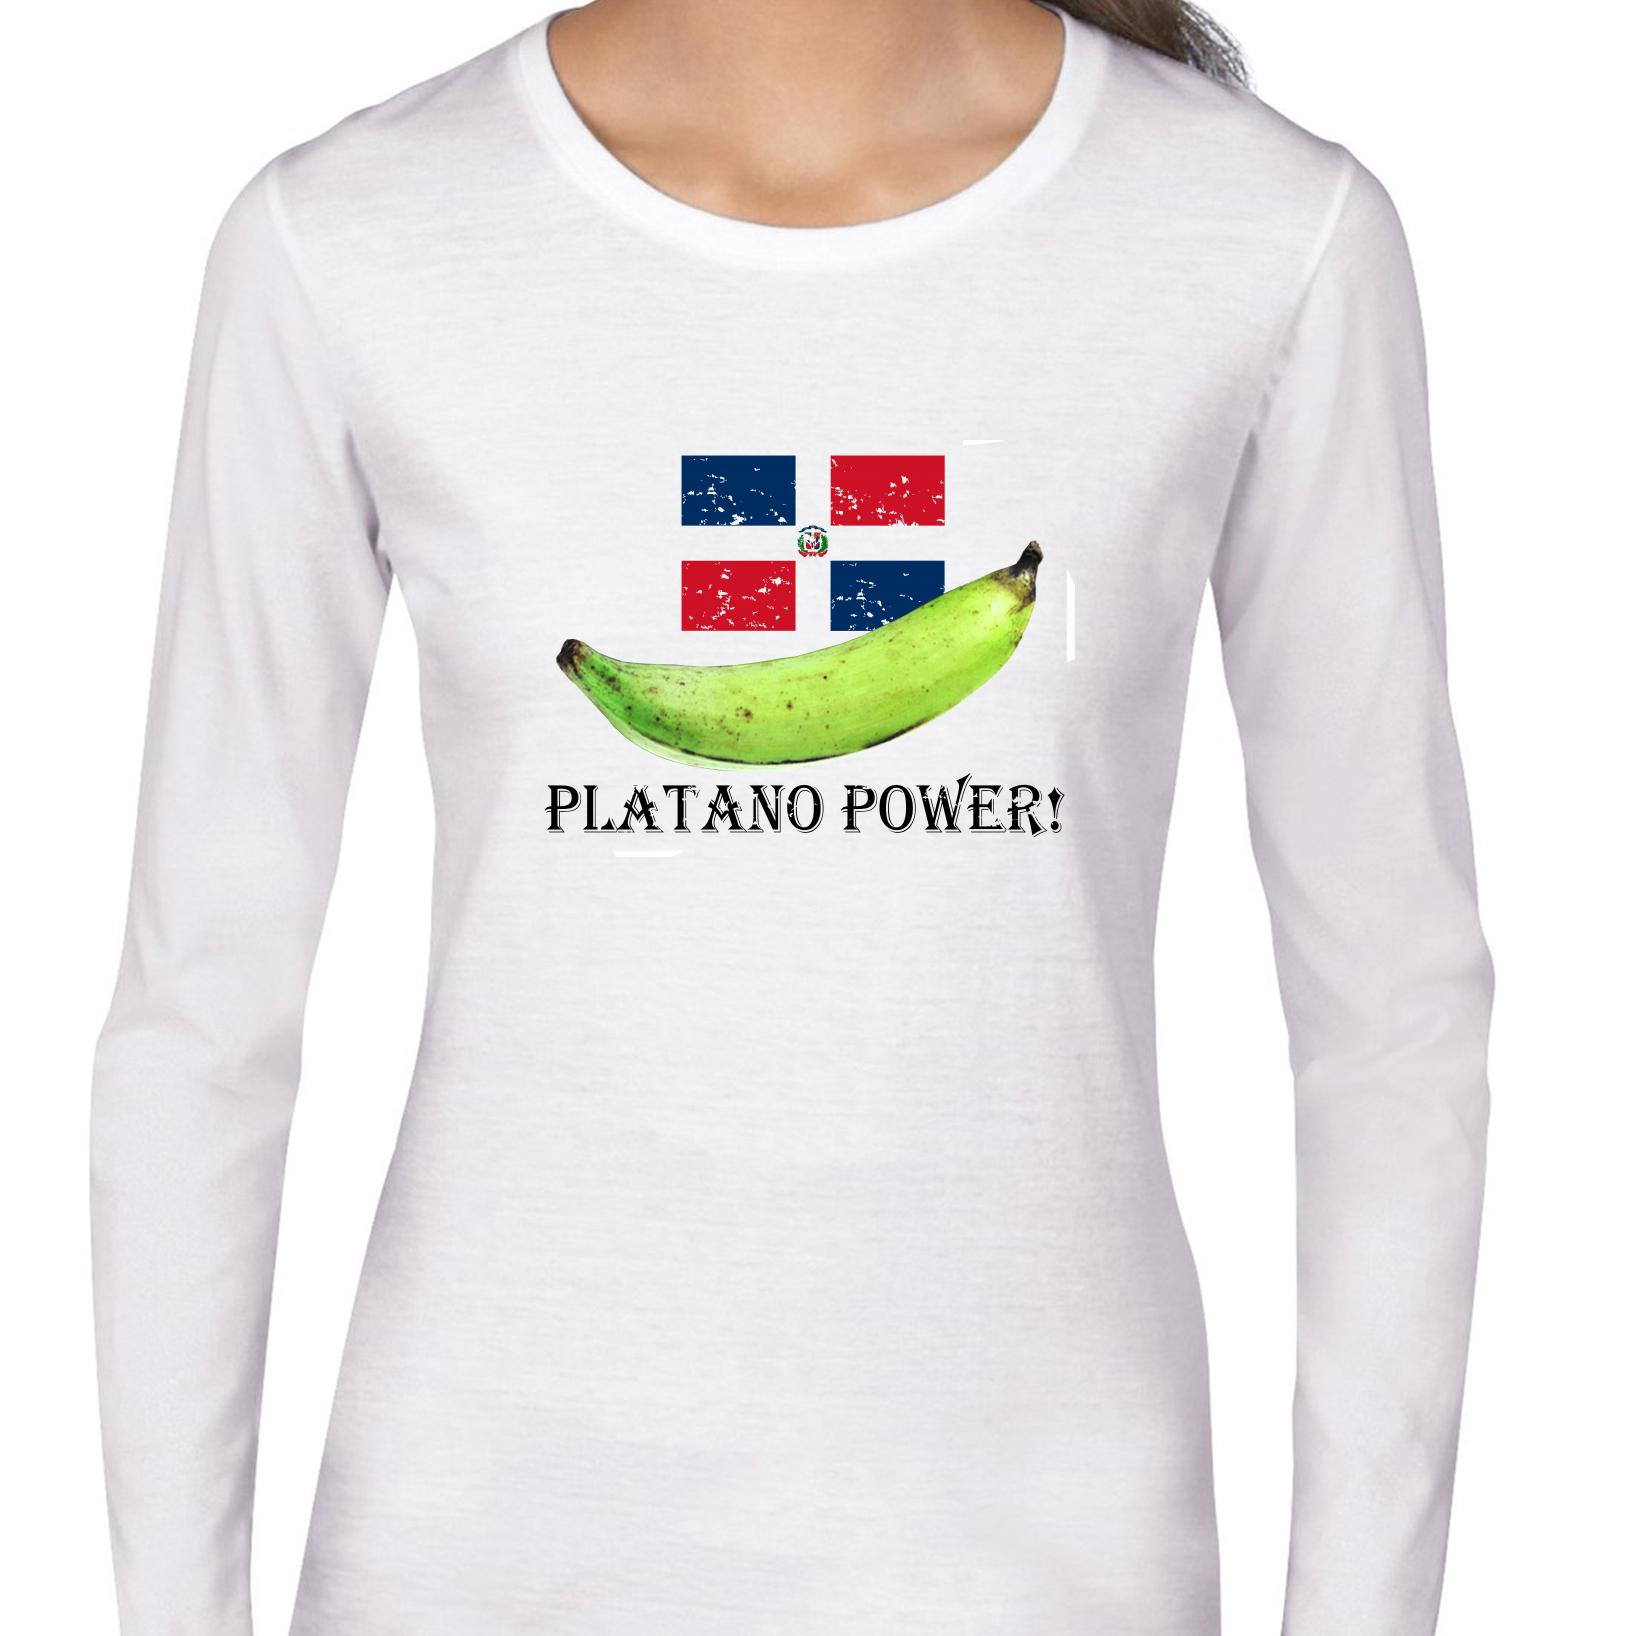 Platano Power - Dominican Republic Flag with Plantain Women's Long Sleeve T-Shirt